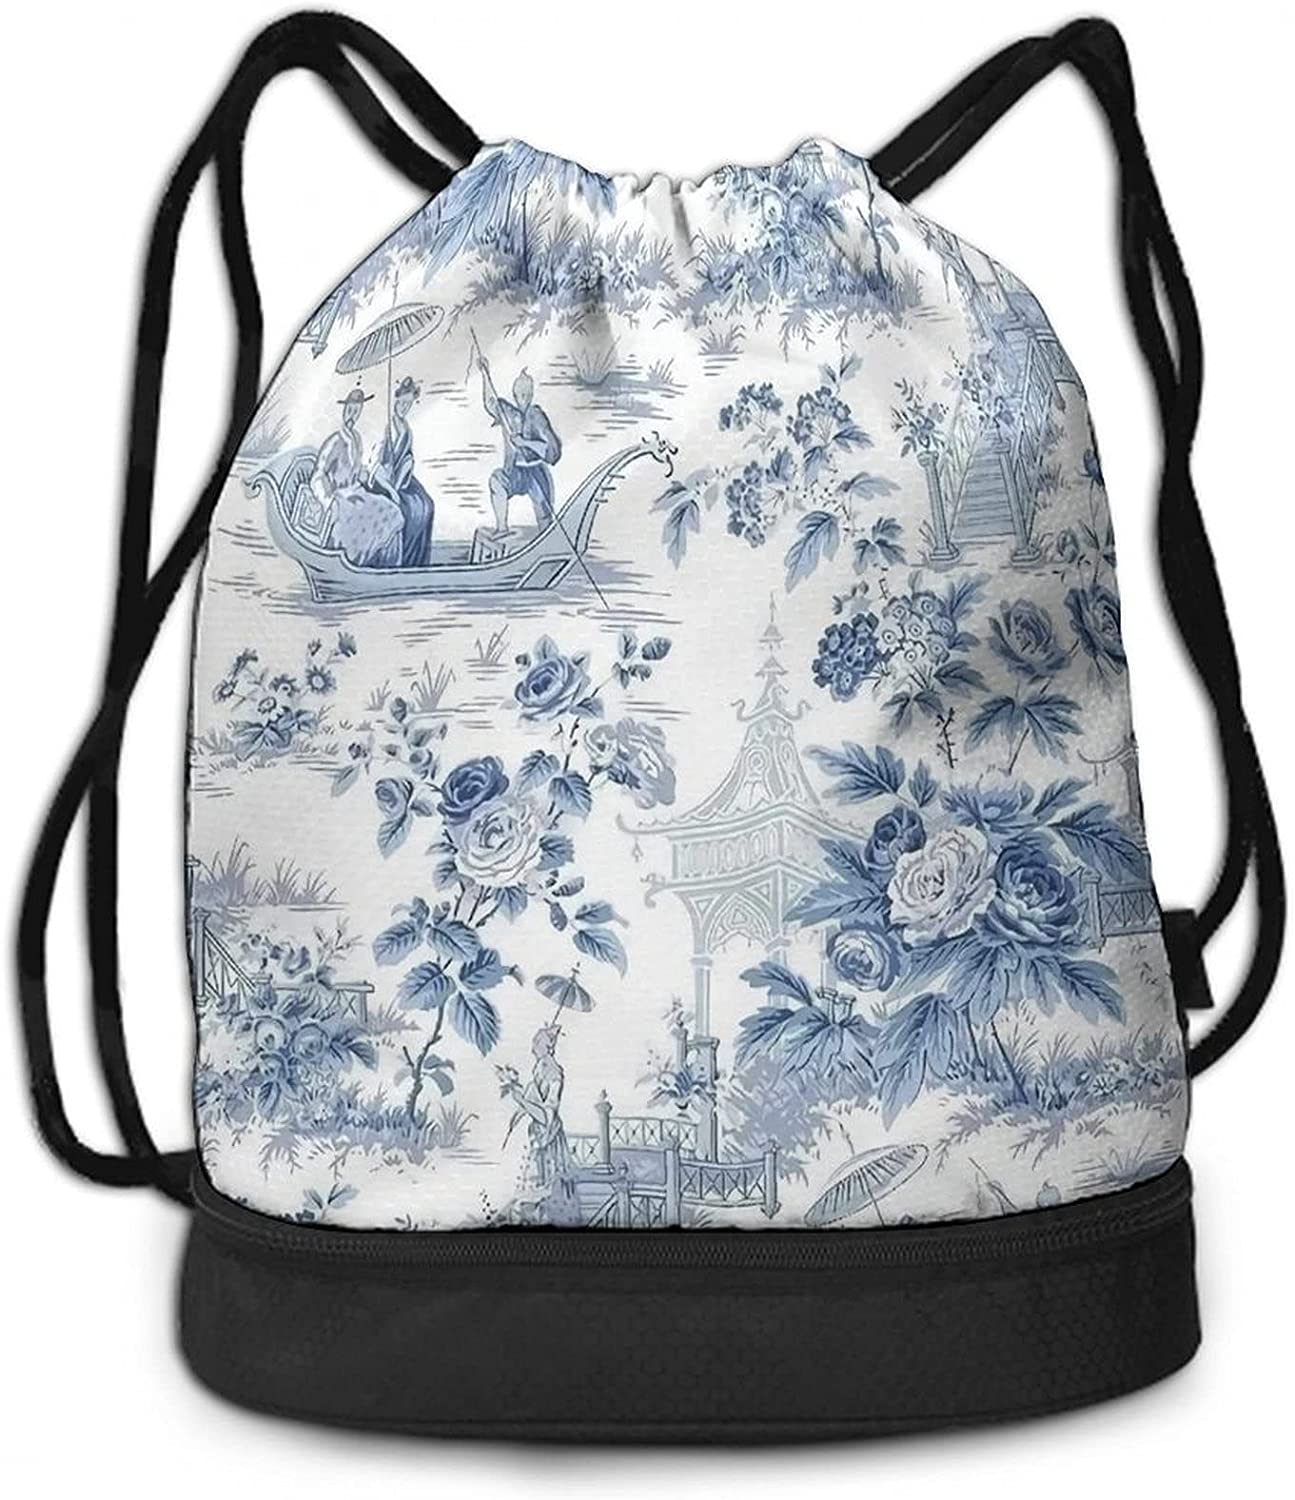 Courier shipping free Men Women Travel Drawstring Backpack String Bag for Size Large ! Super beauty product restock quality top!